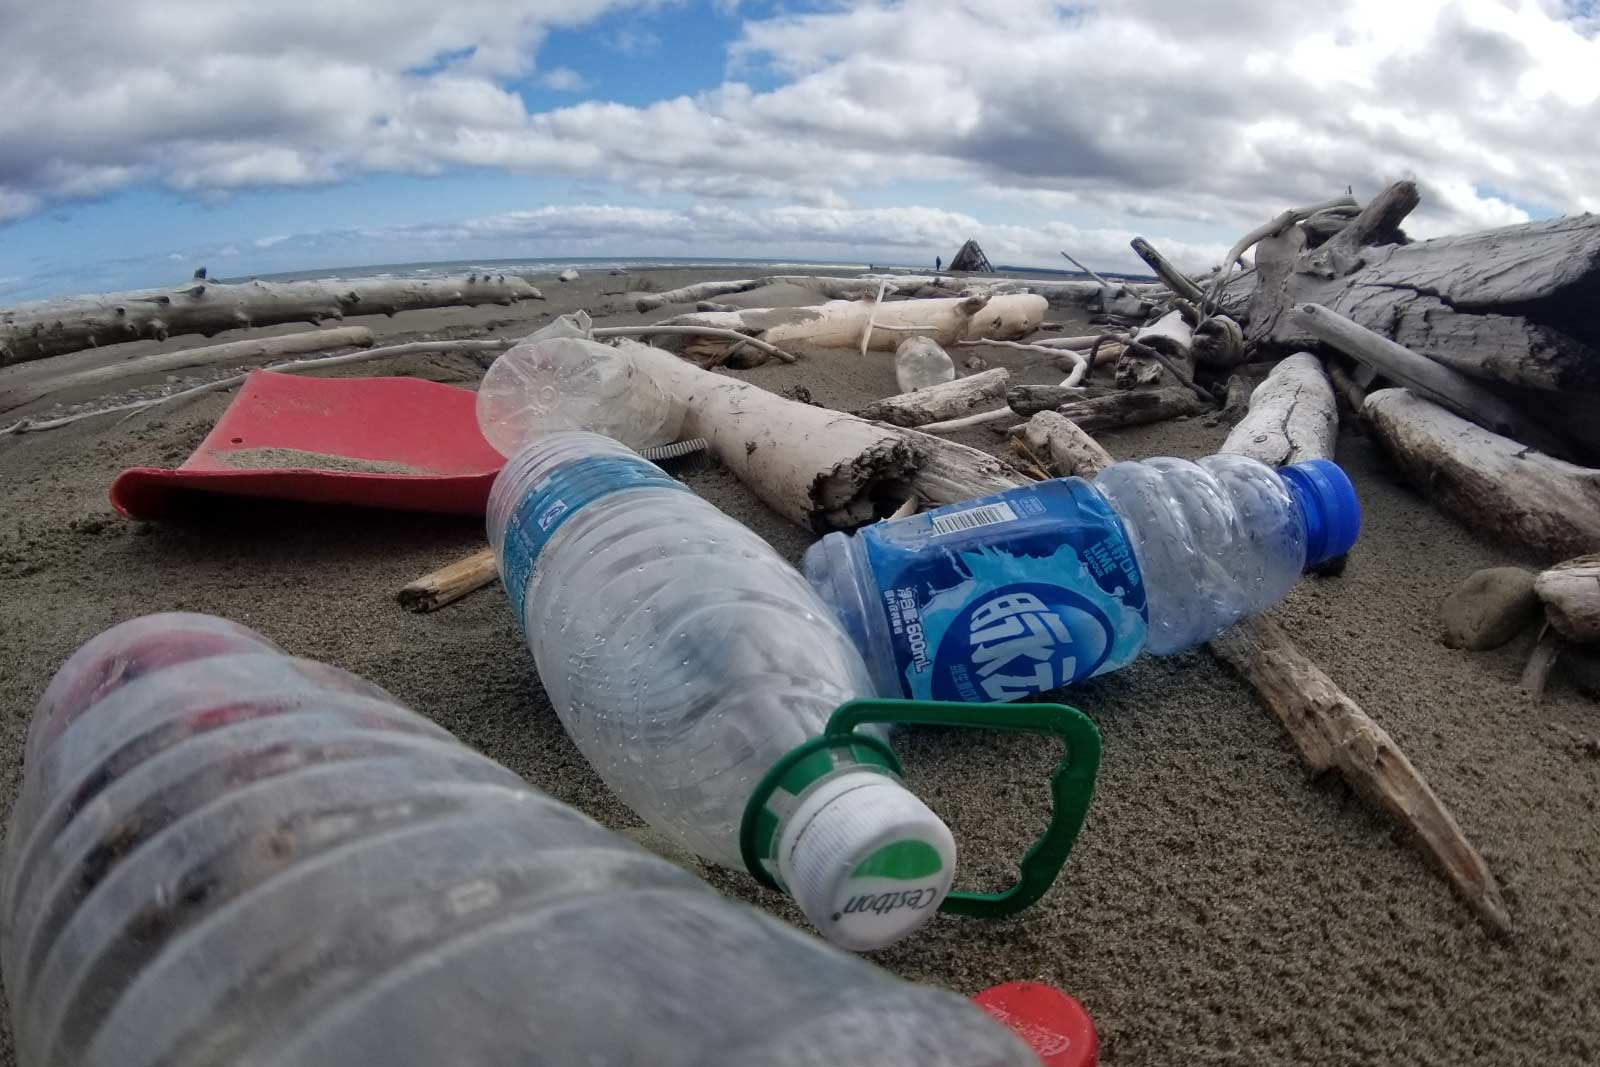 Plastic bottles washed up on beach